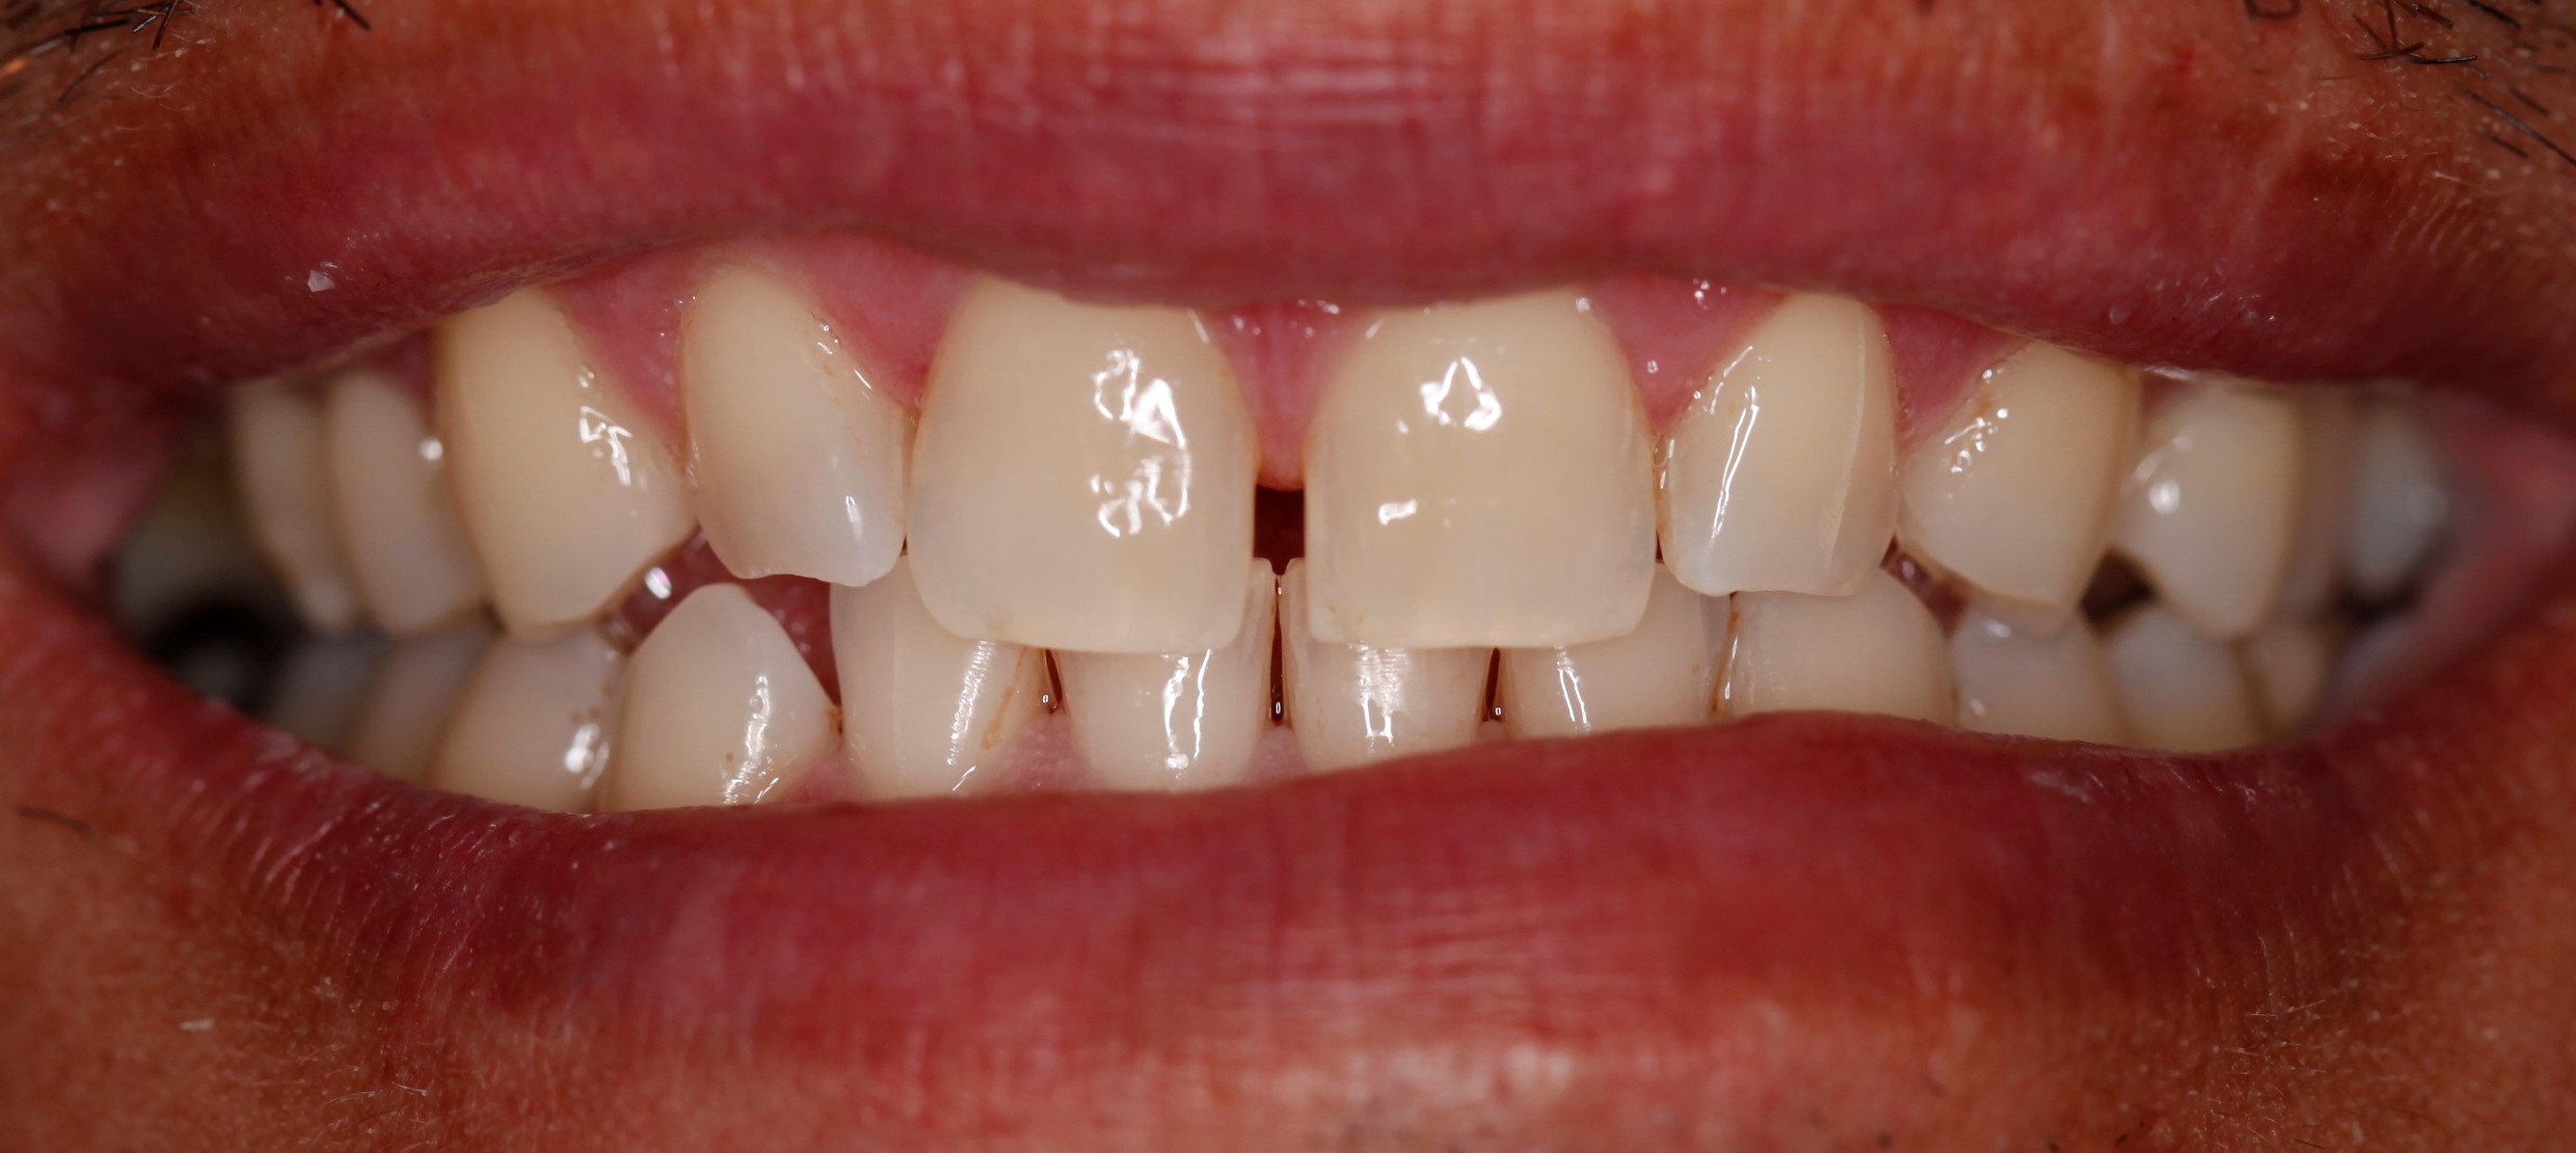 Close tooth gaps with dental veneers and tooth whitening best cosmetic dentist Greenwood Village